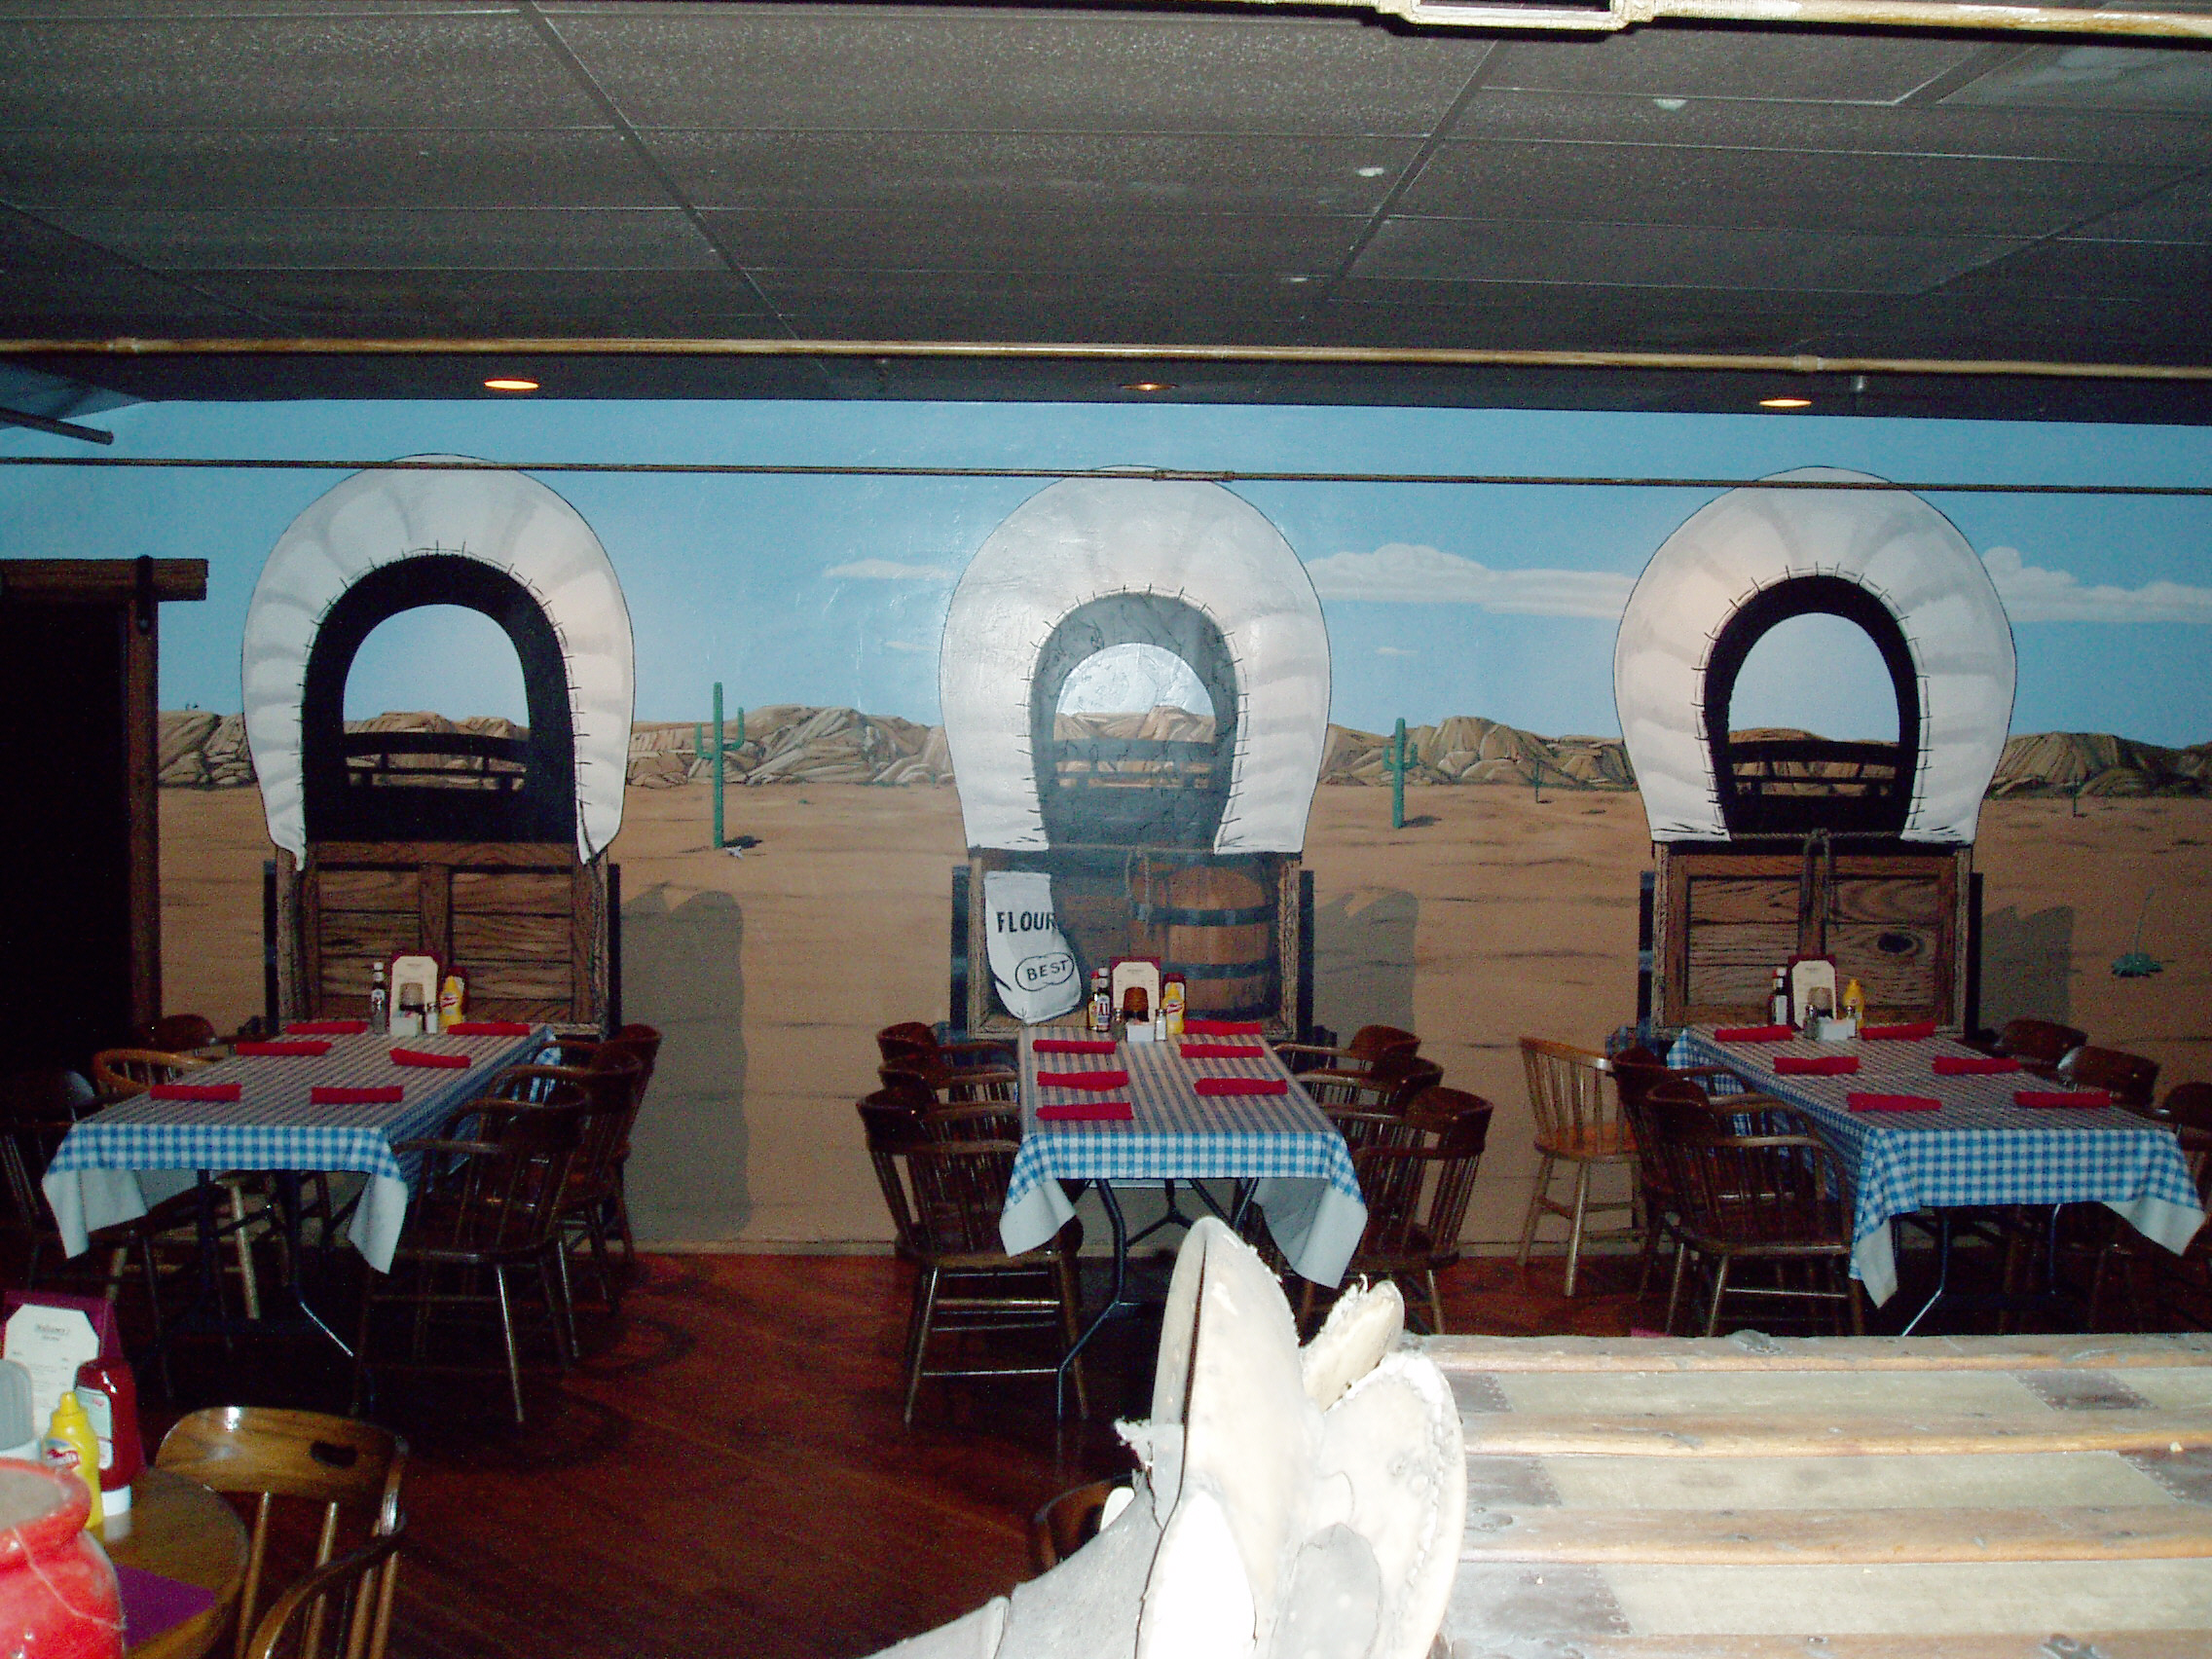 Western Woodwork & Mural Wagon Wheel Restaurant Interior Santee California 2.jpg